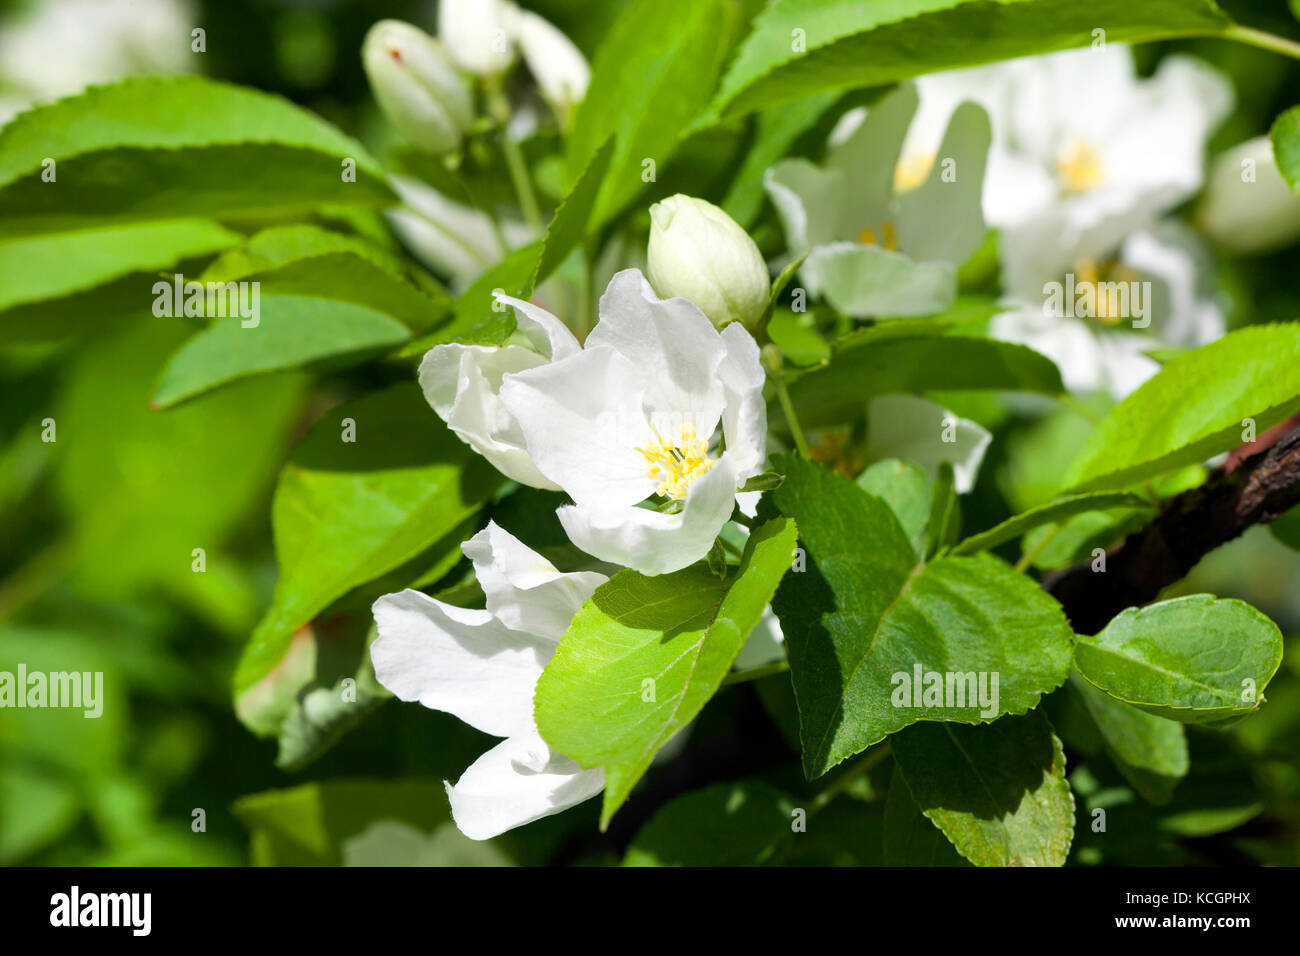 Jasmine Flower Growing On The Bush In Garden Floral Background